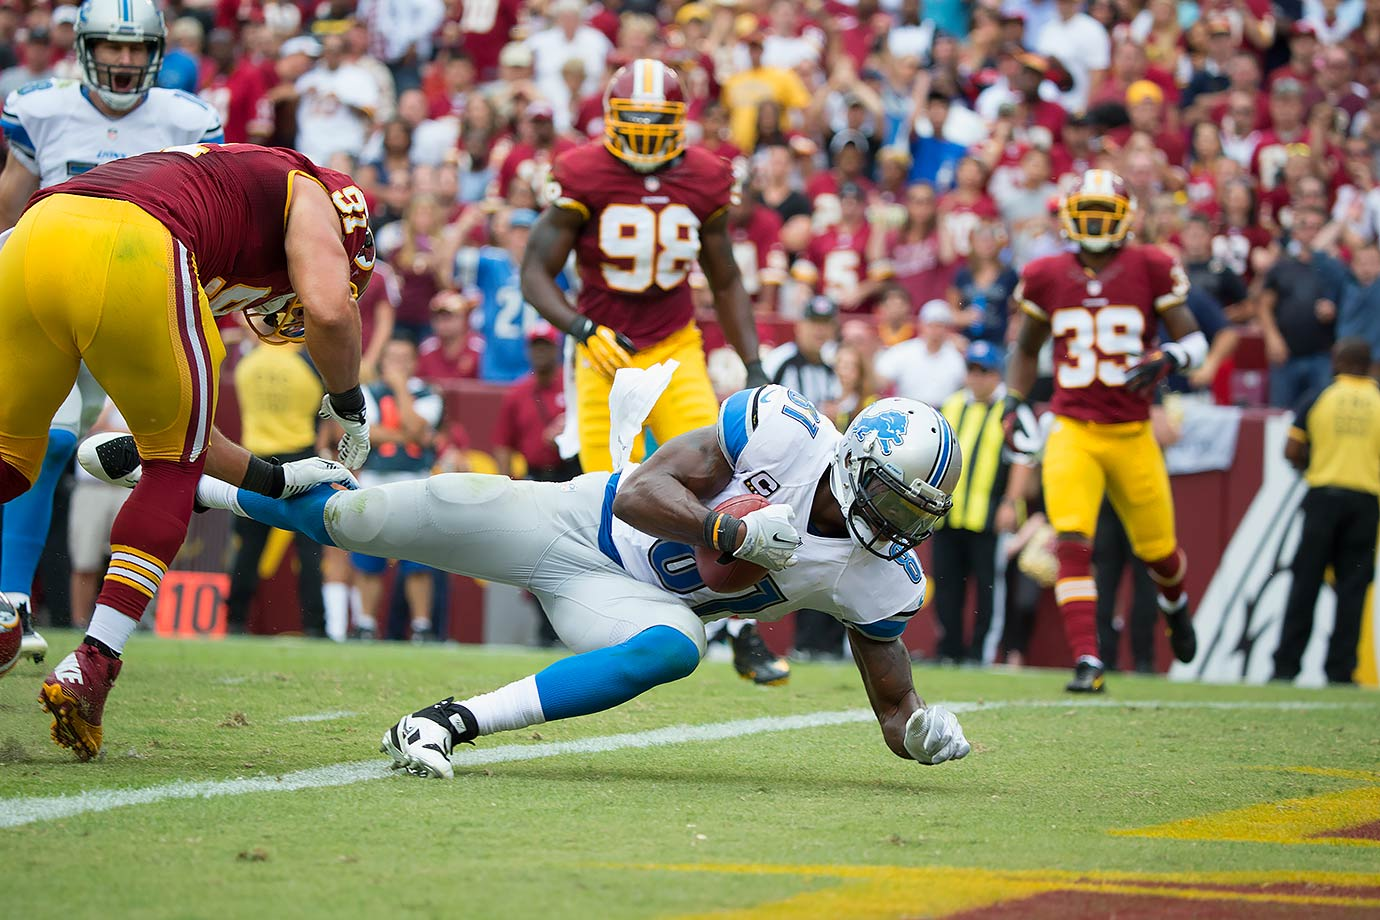 Sept. 22, 2013 — Detroit Lions vs. Washington Redskins